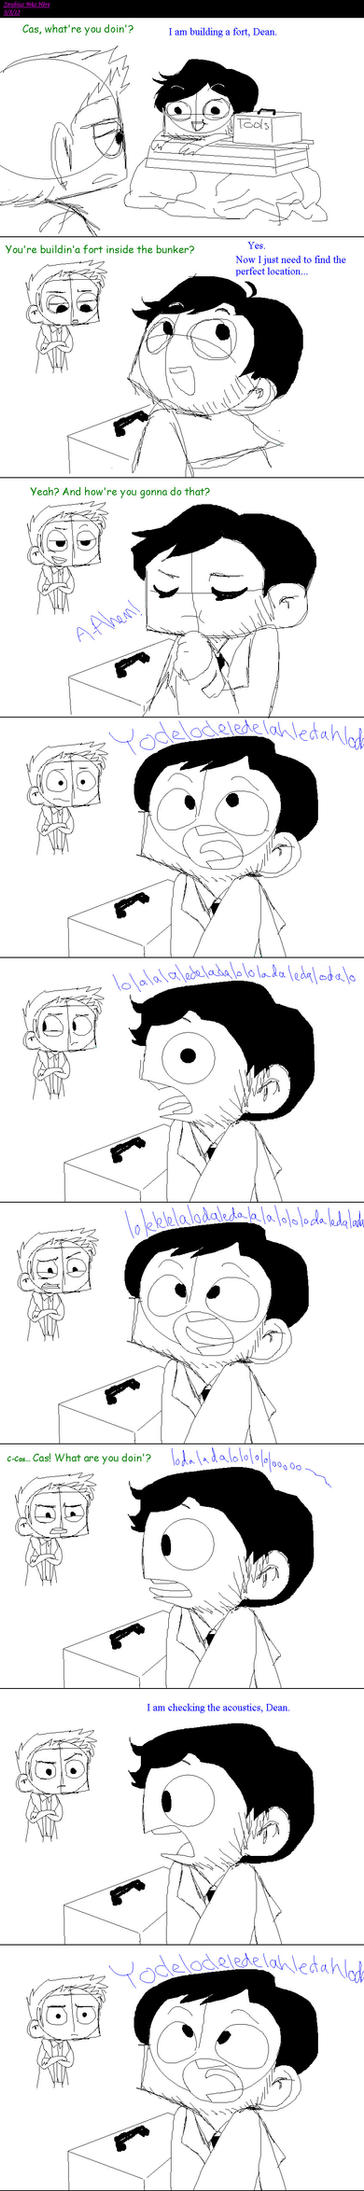 How to Build a Fort: Castiel Style by Strabius